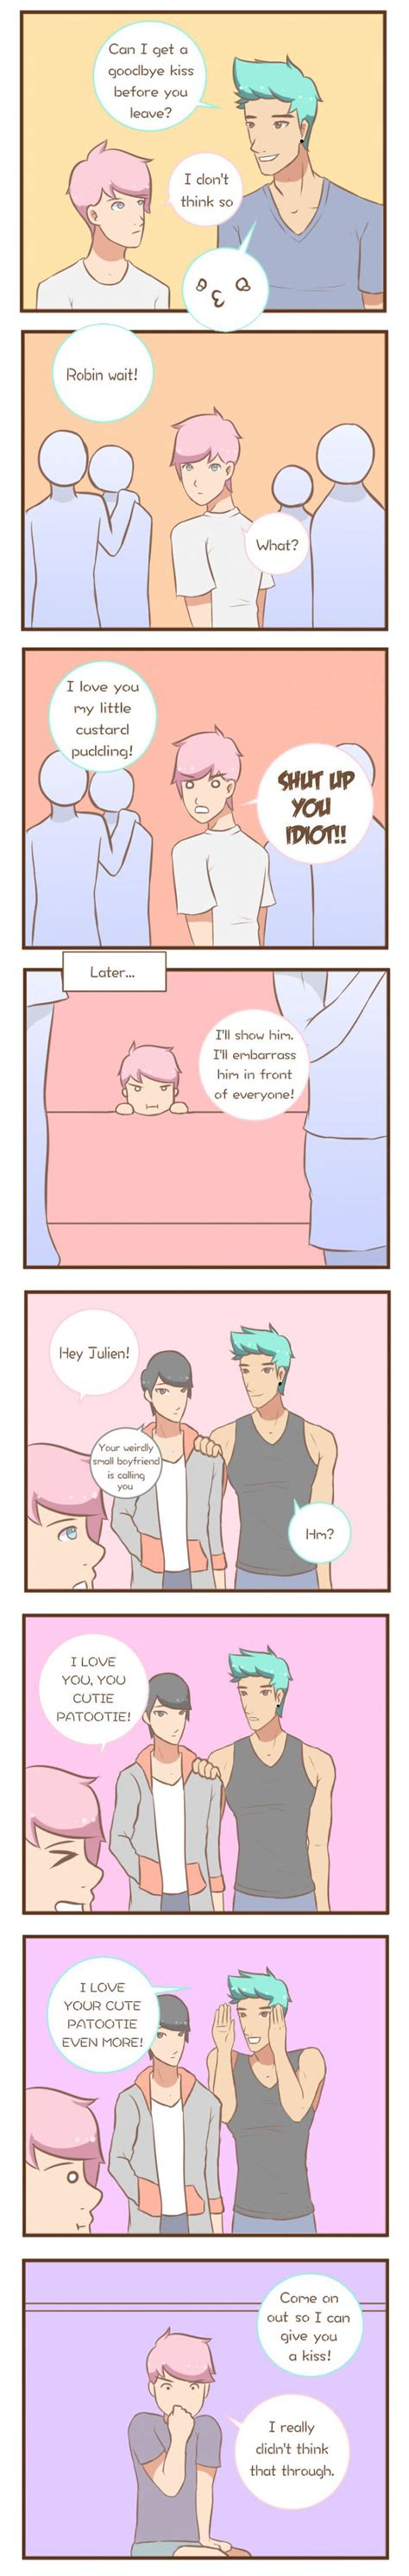 5 Adorable Comics About Gay Couples Everyday Life Bored